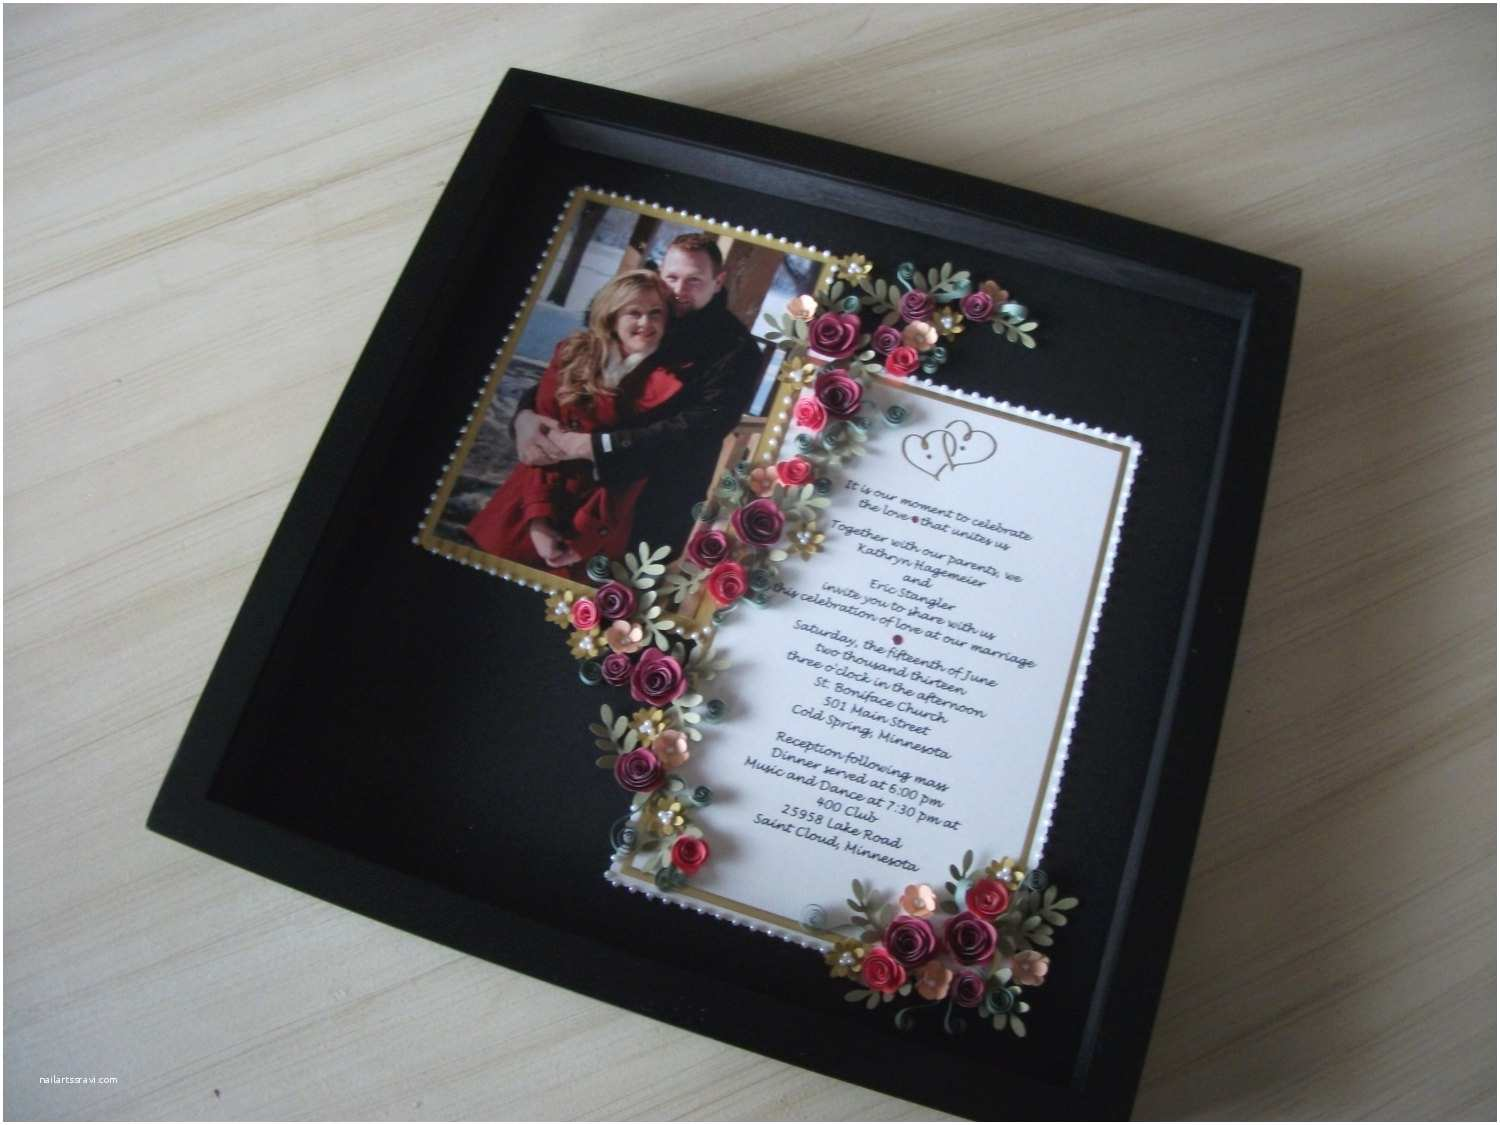 Wedding Invitation Frame Paper Quilled Wedding Invitation & Picture Framed Under Glass